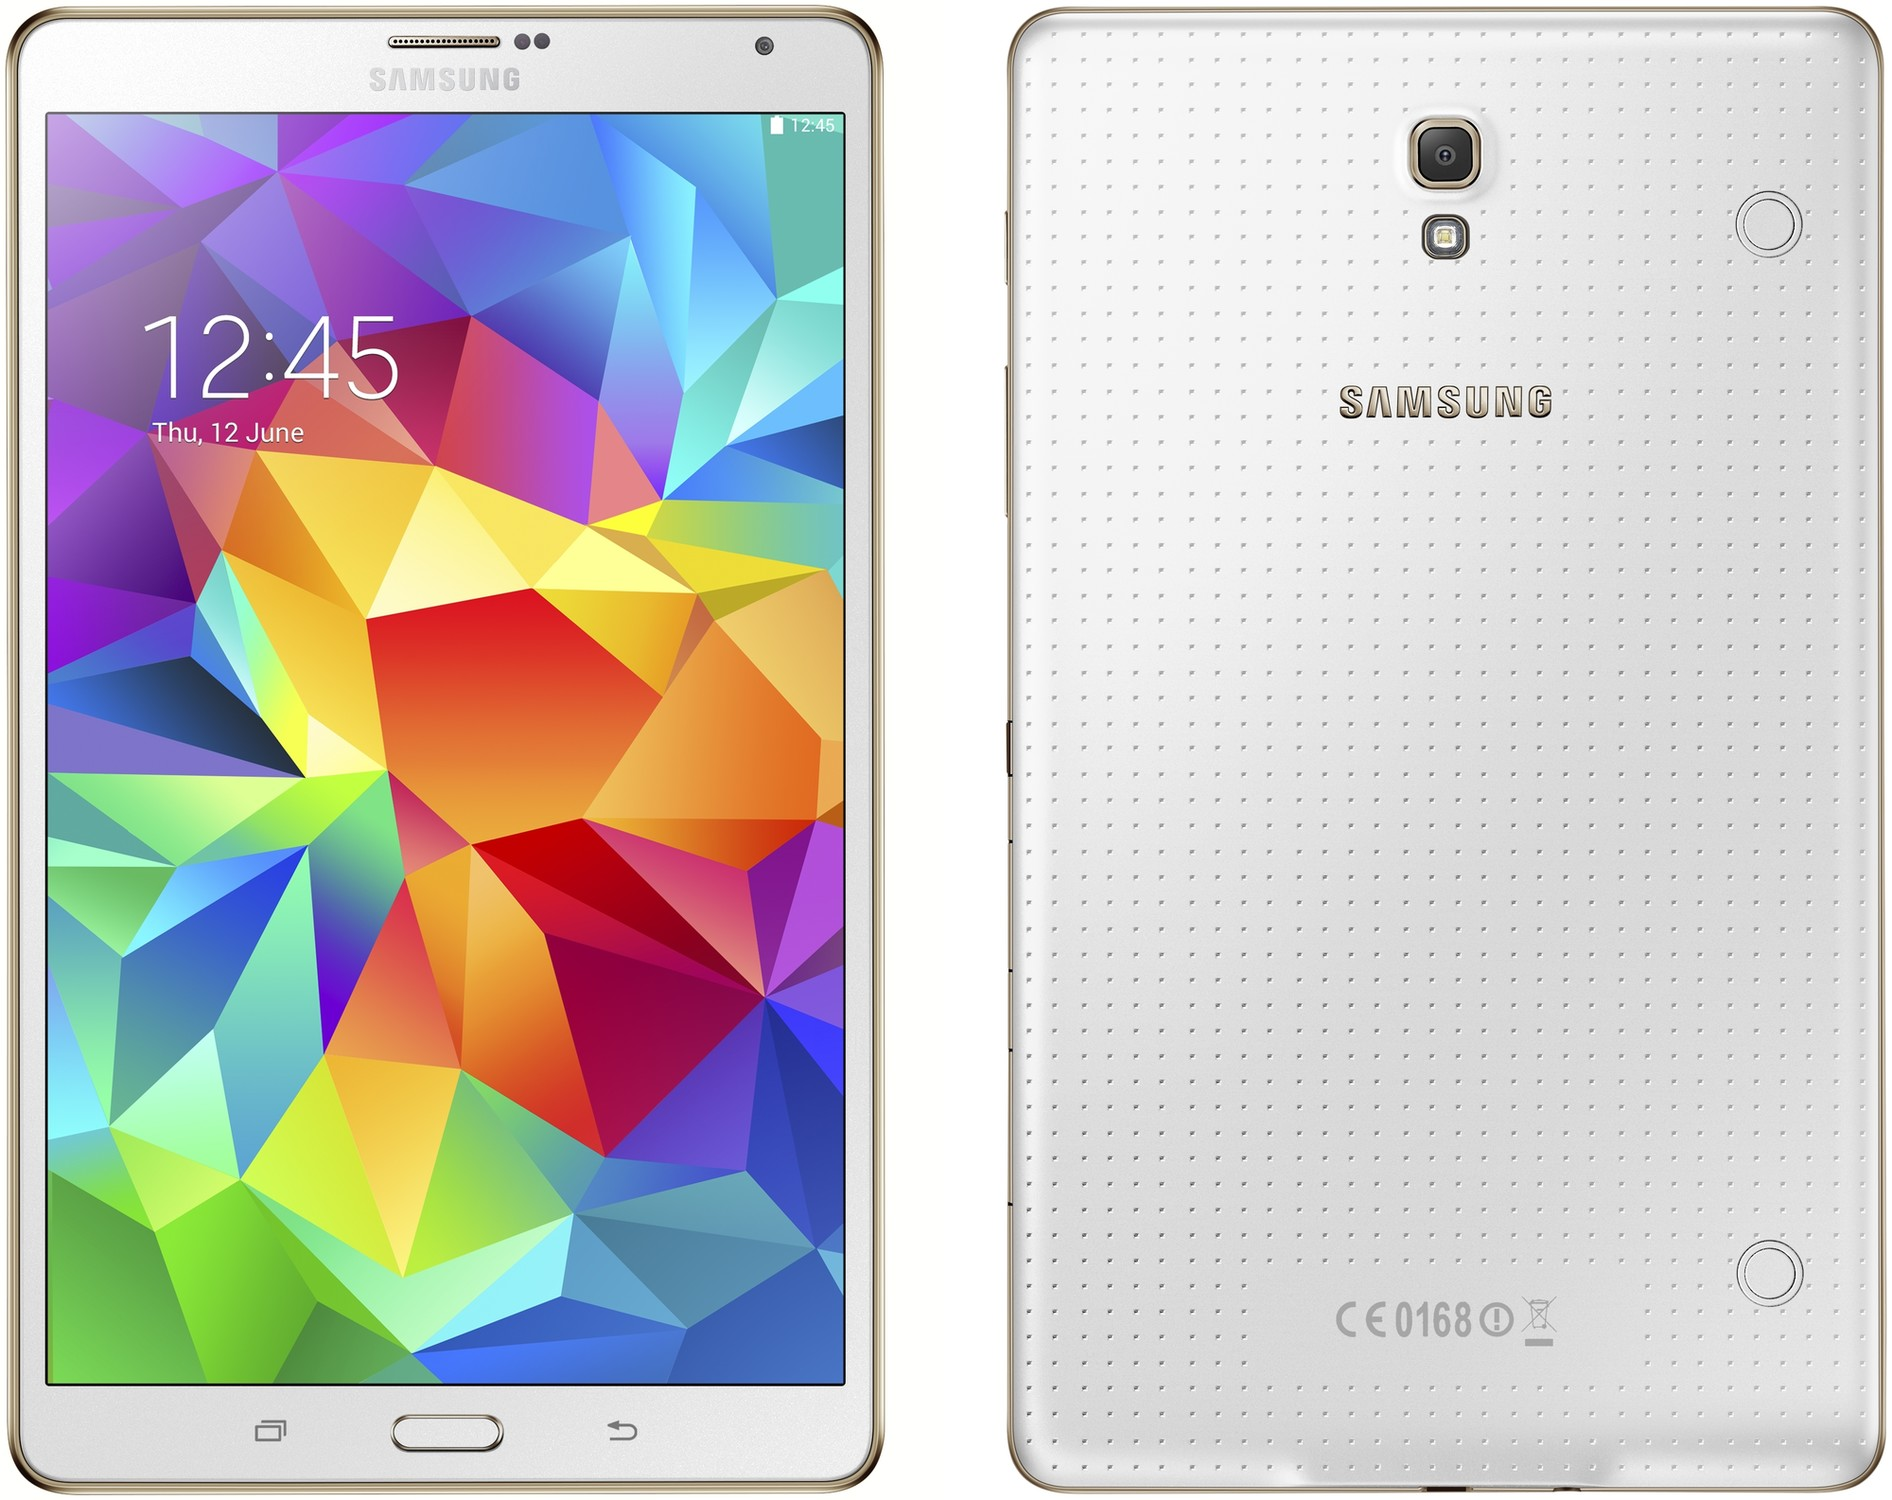 Update Samsung Galaxy Tab S 8 4 to Android 7 1 Nougat